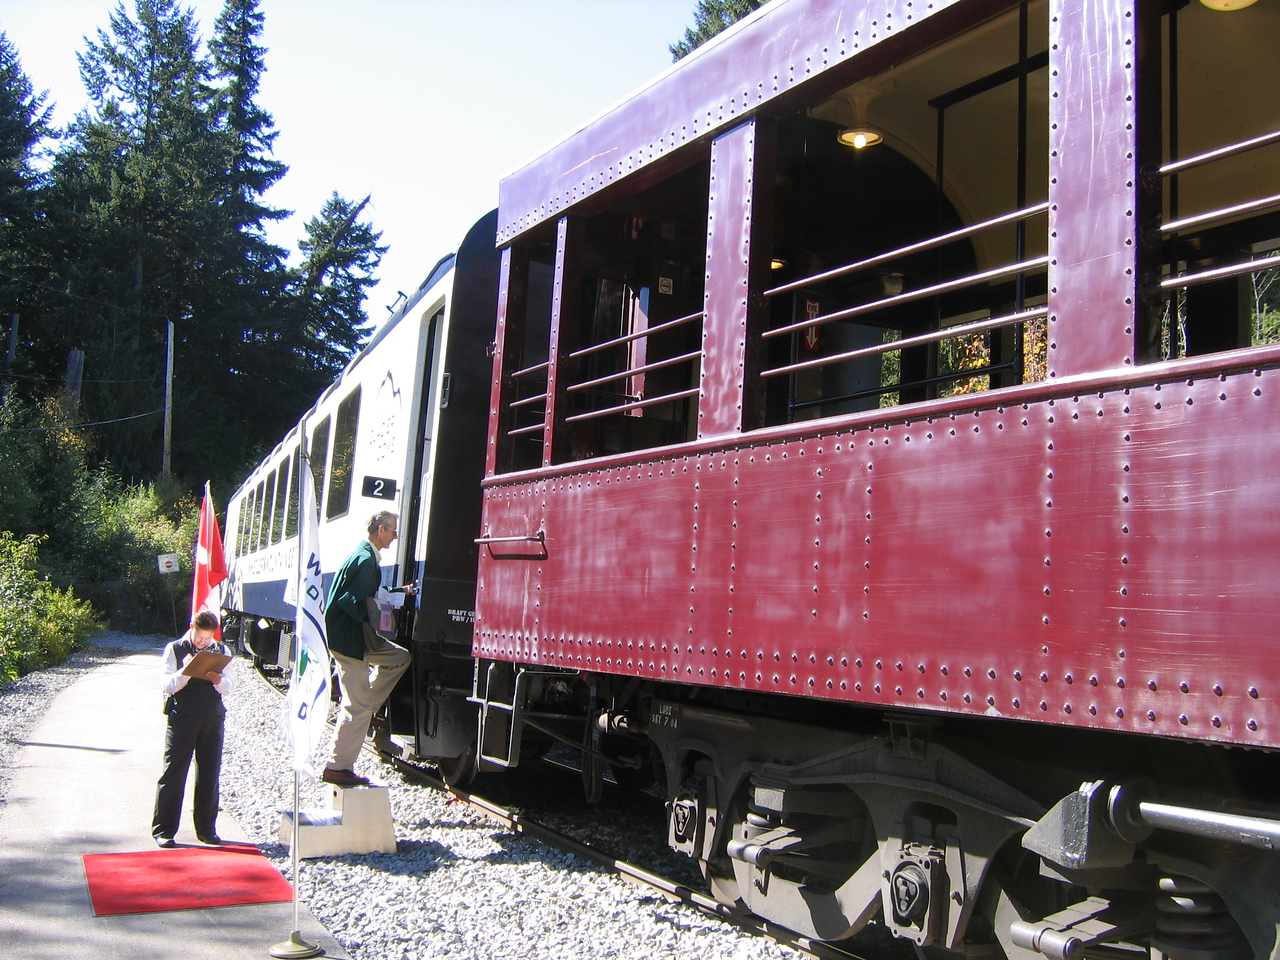 Our car was next to the outdoor Observation car.